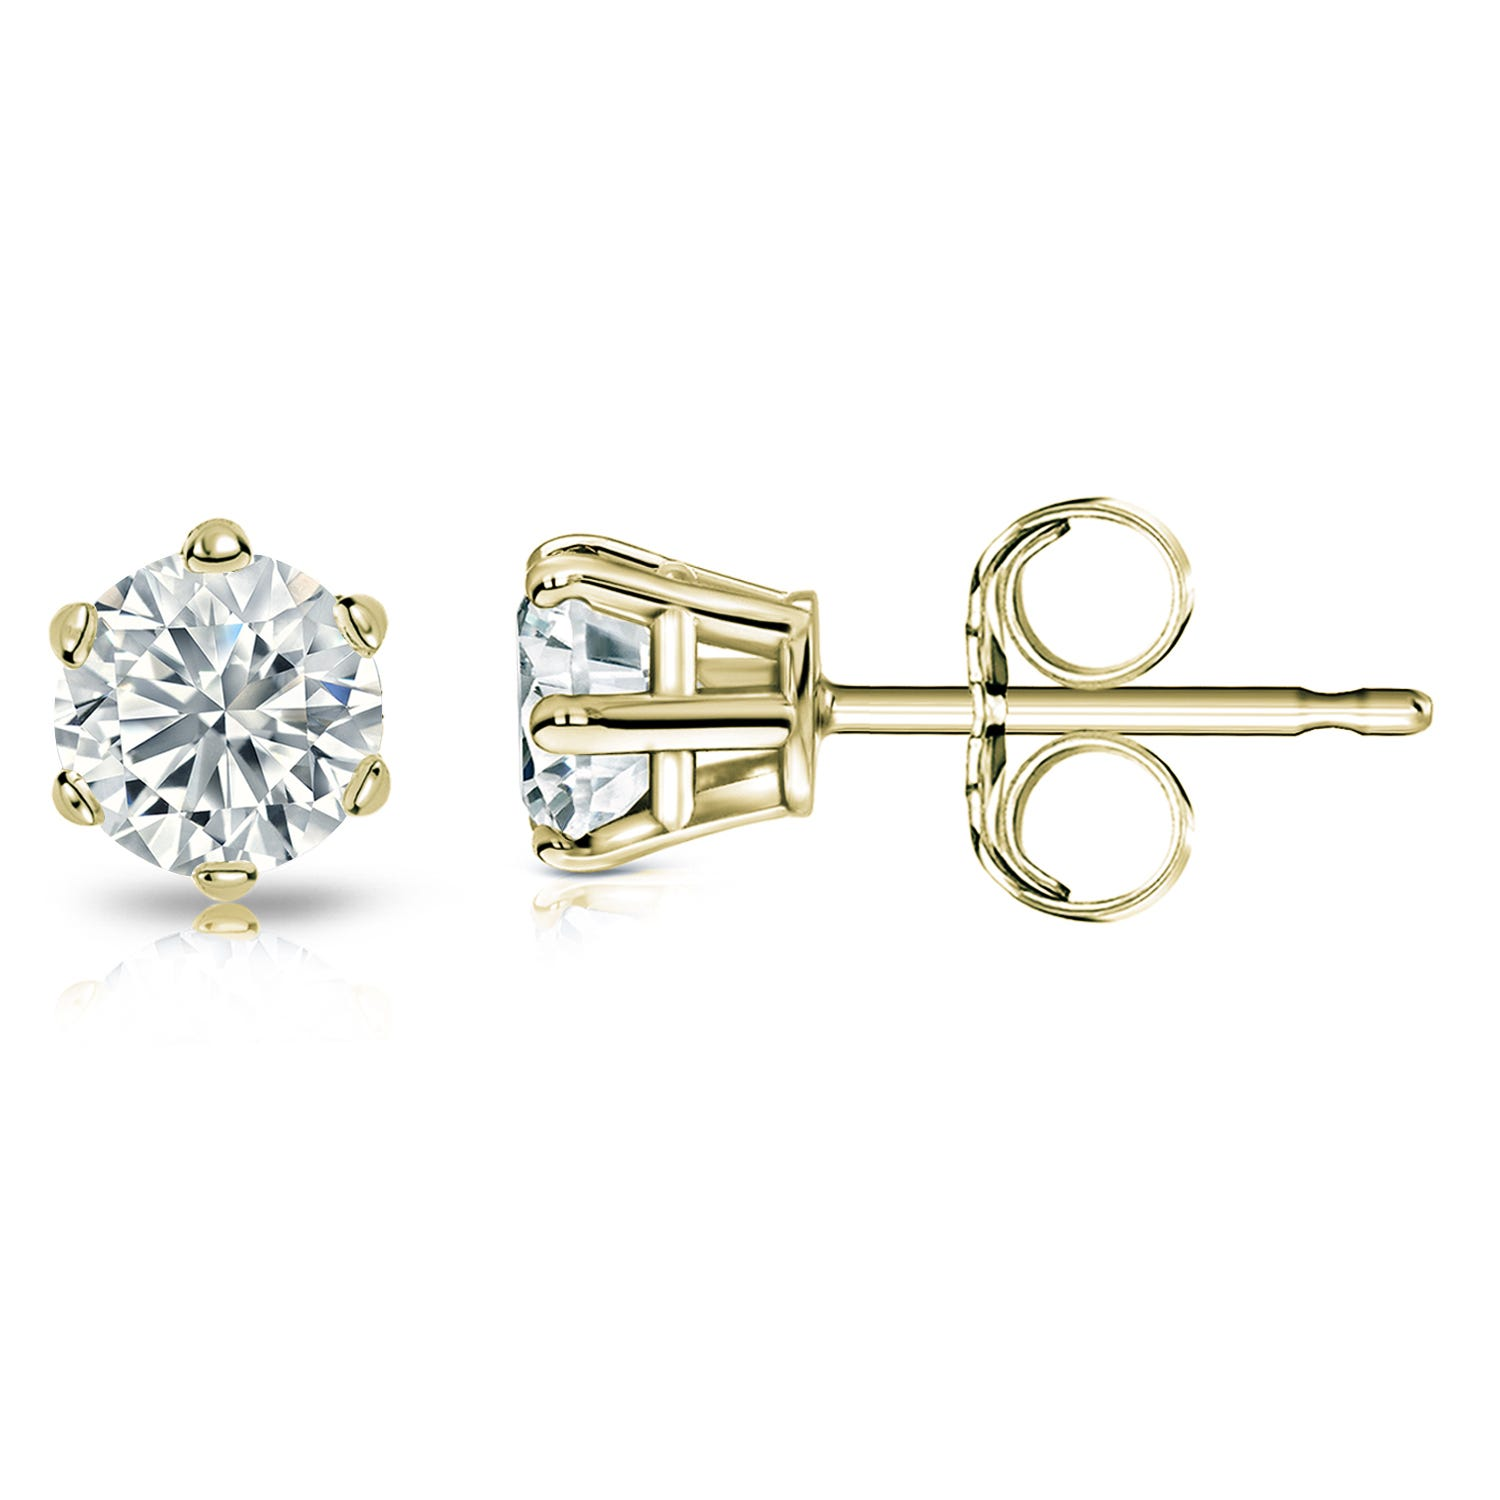 Round Diamond 1ctw. (IJ-I2) Solitaire Stud 6-Prong Earrings in 14K Yellow Gold